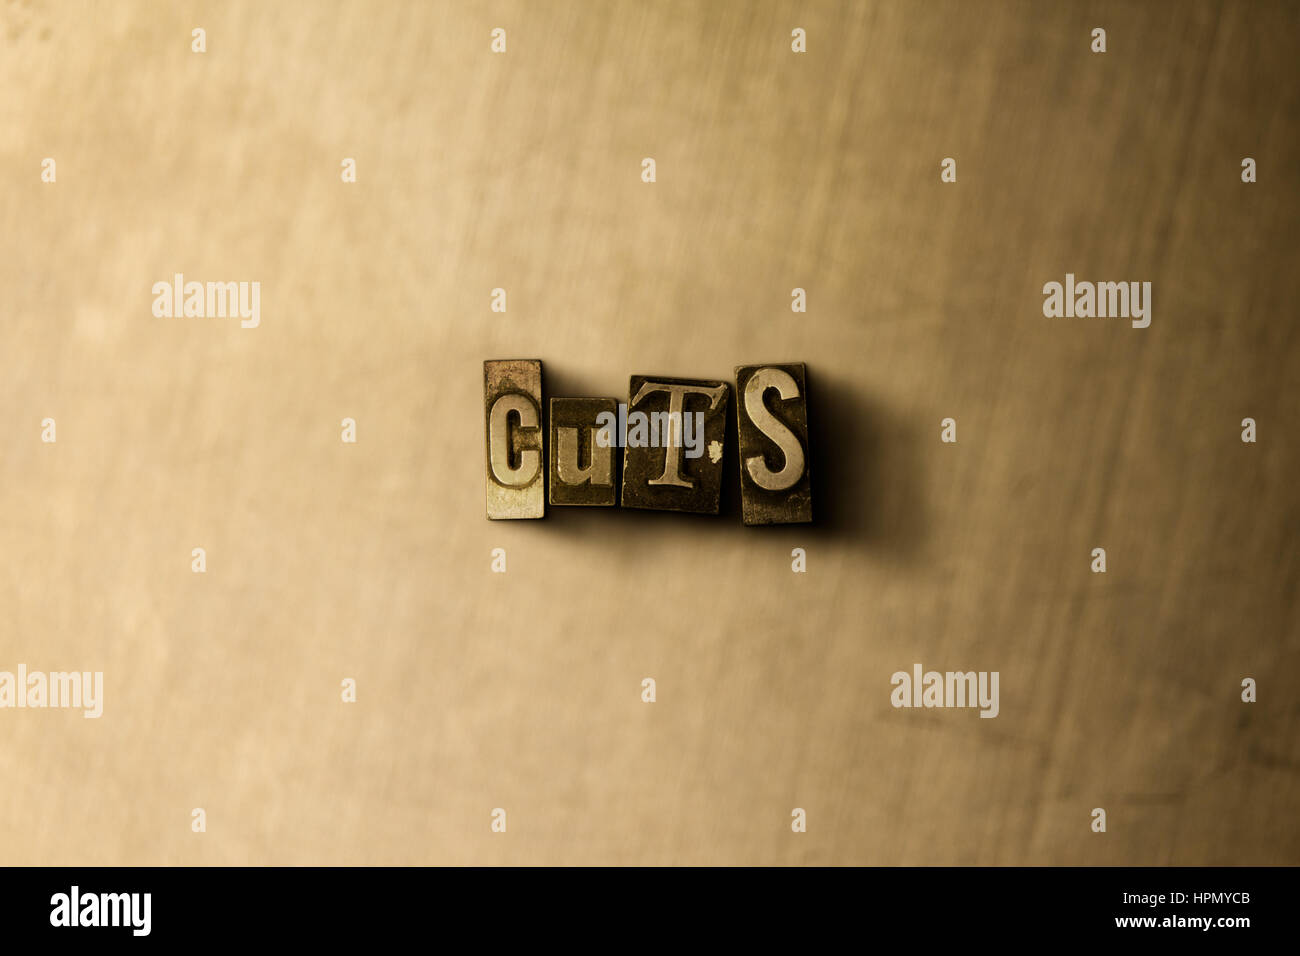 CUTS - close-up of grungy vintage typeset word on metal backdrop. Royalty free stock illustration.  Can be used - Stock Image